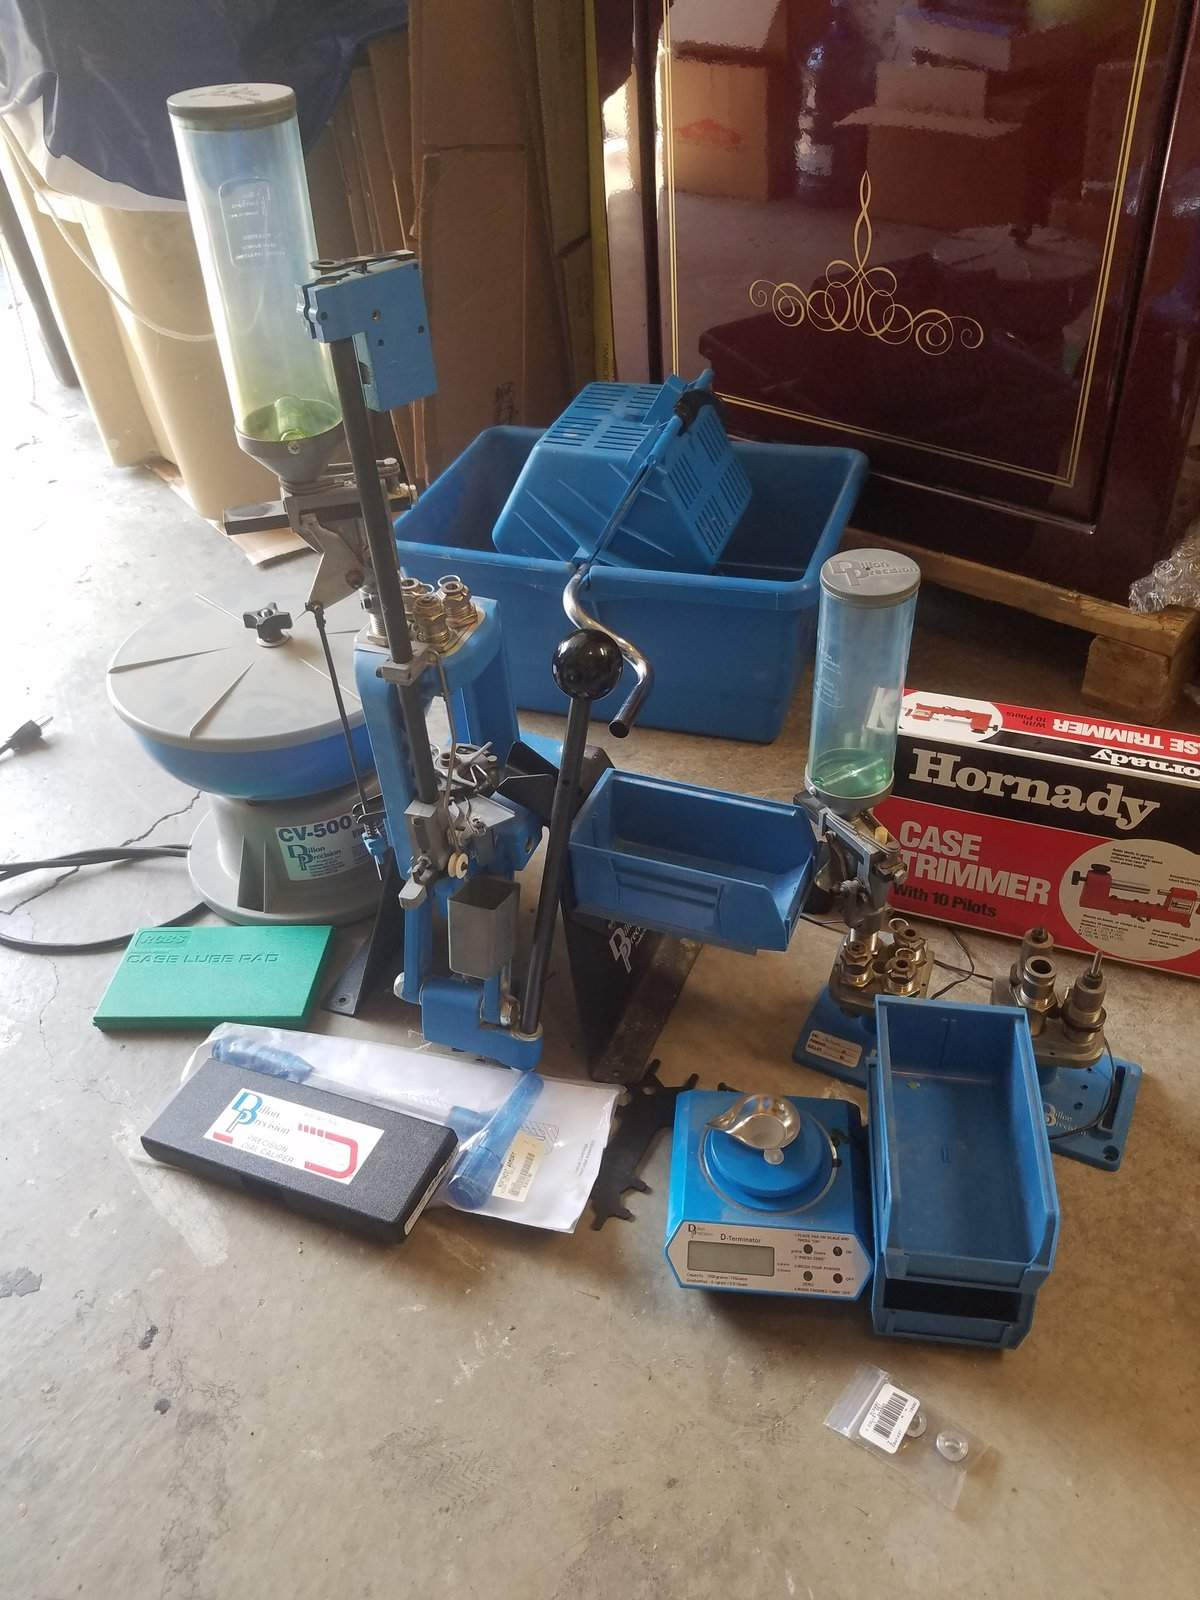 WTS OR - Dillon 550 9/40/ 223 scale, tumbler, calipers, case